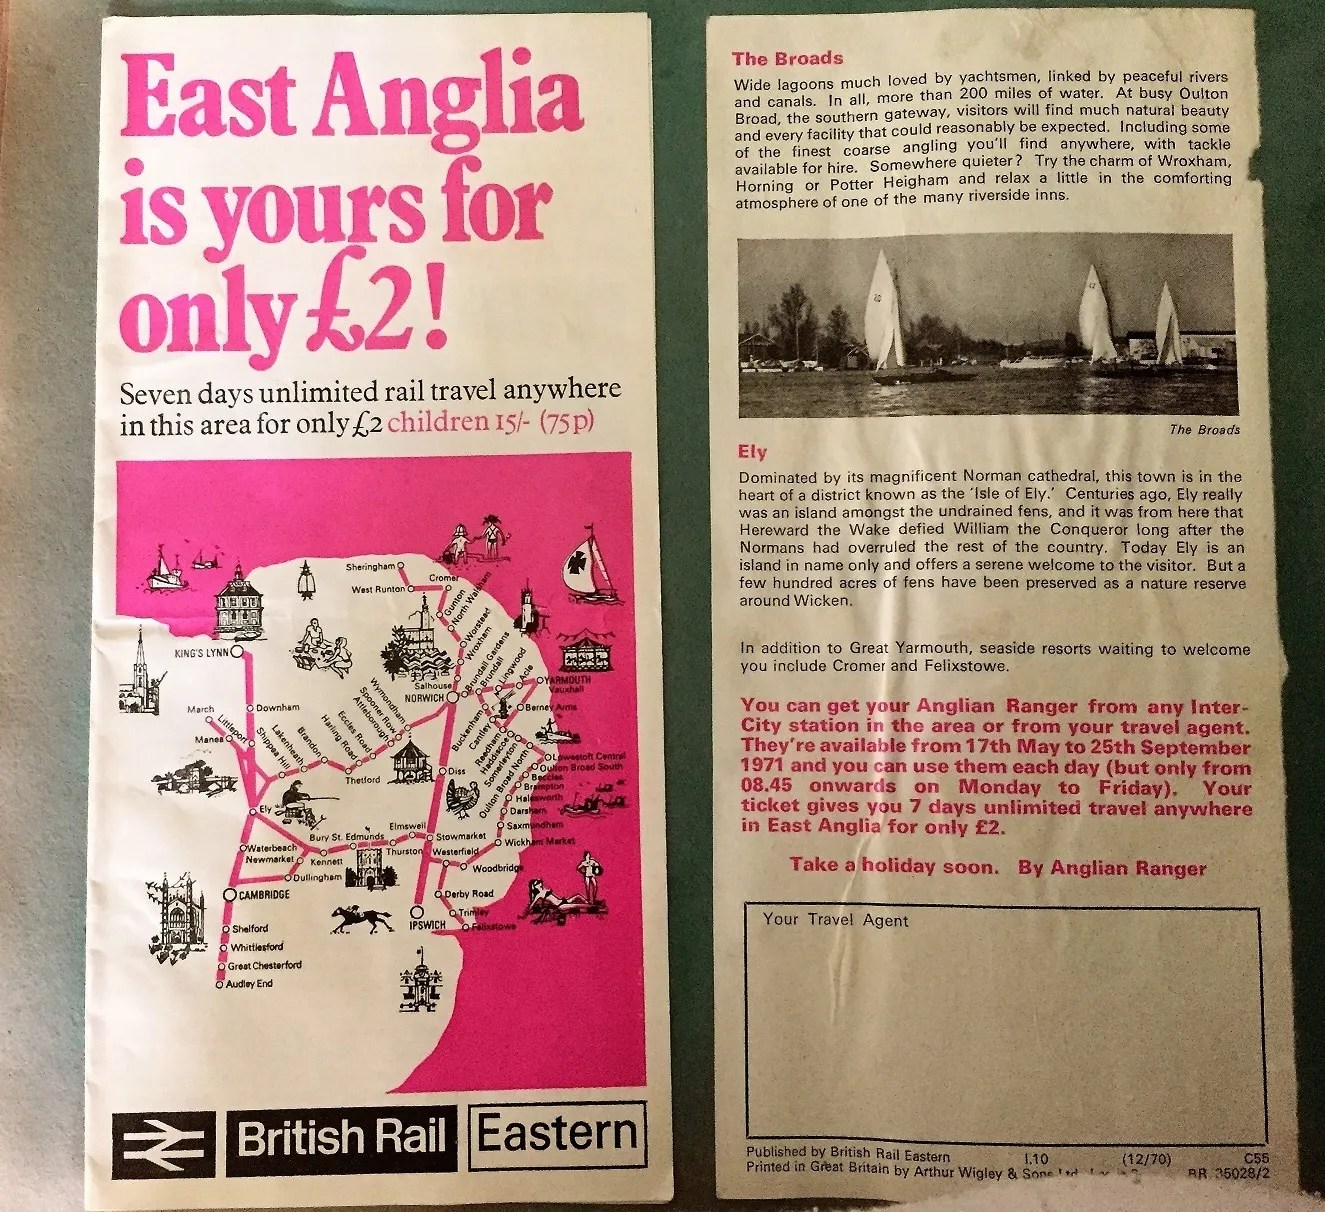 British Rail leaflet from 1971 promoting the British Rail Eastern Region Rover